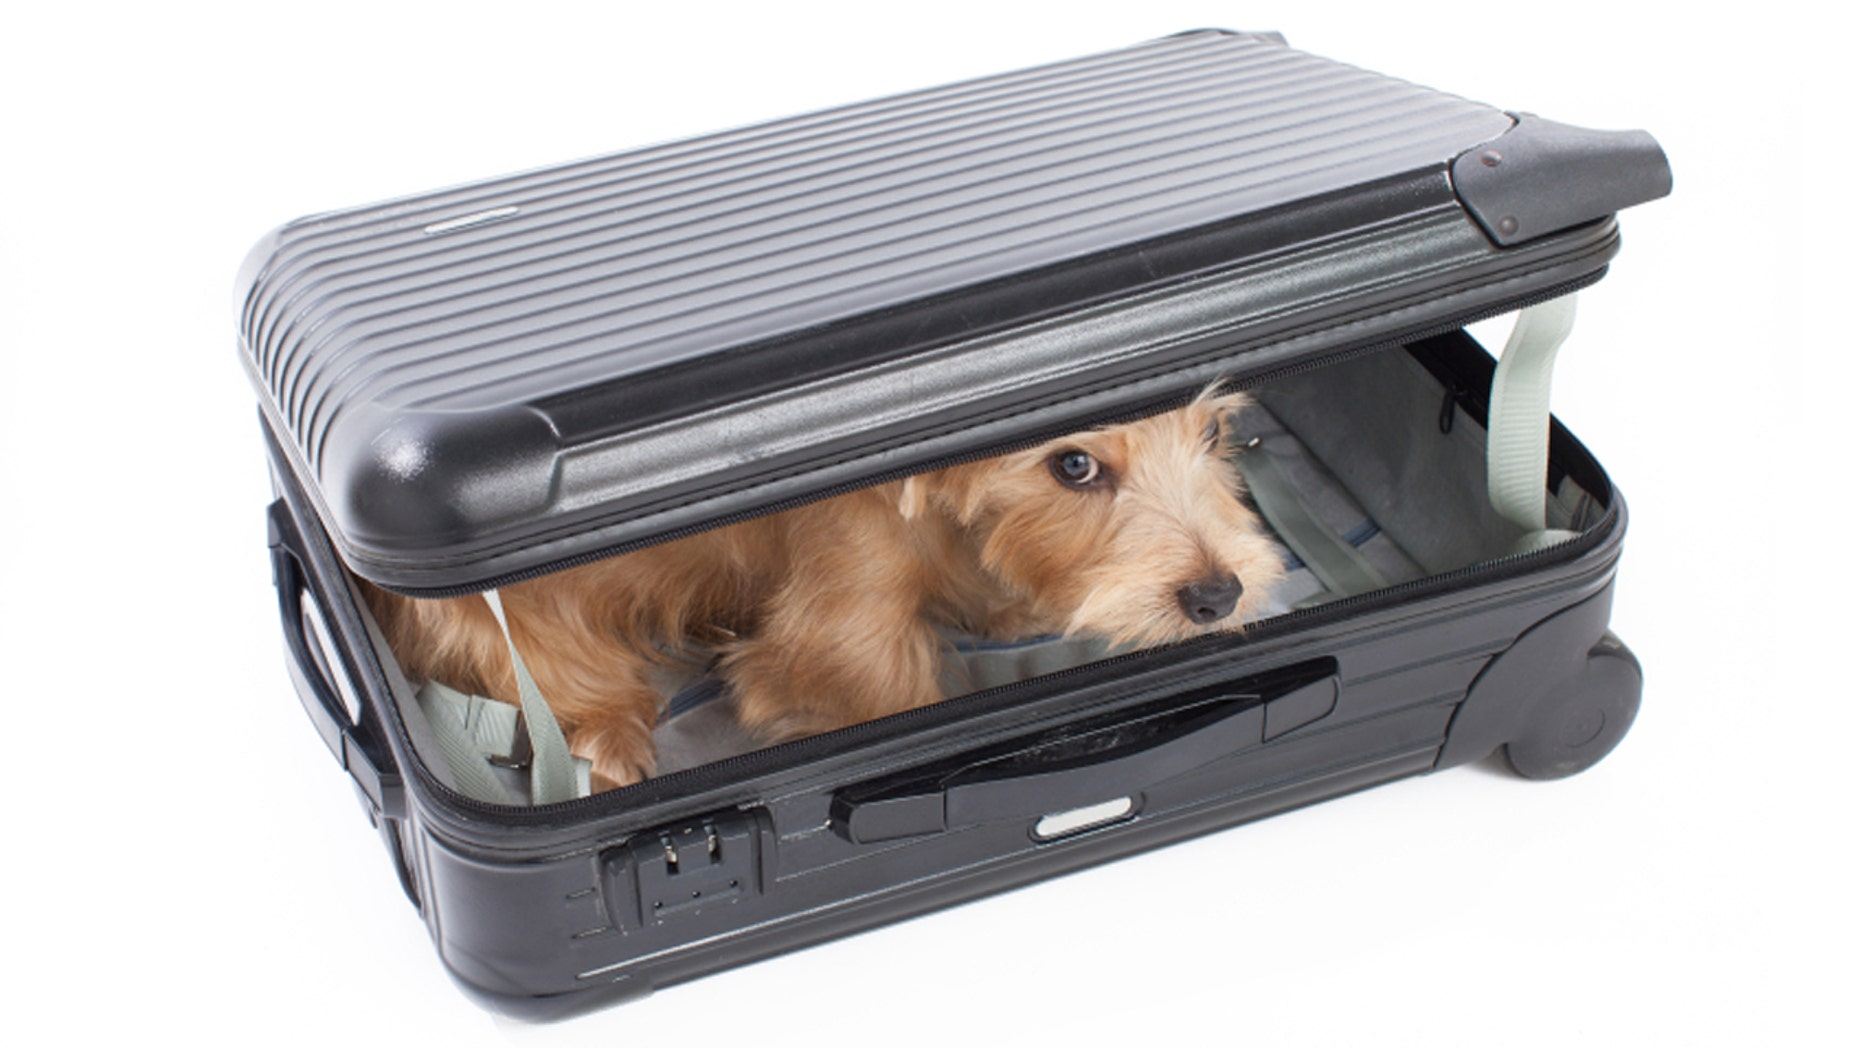 A small Schnauzer snuck into his unsuspecting owner's suitcase.